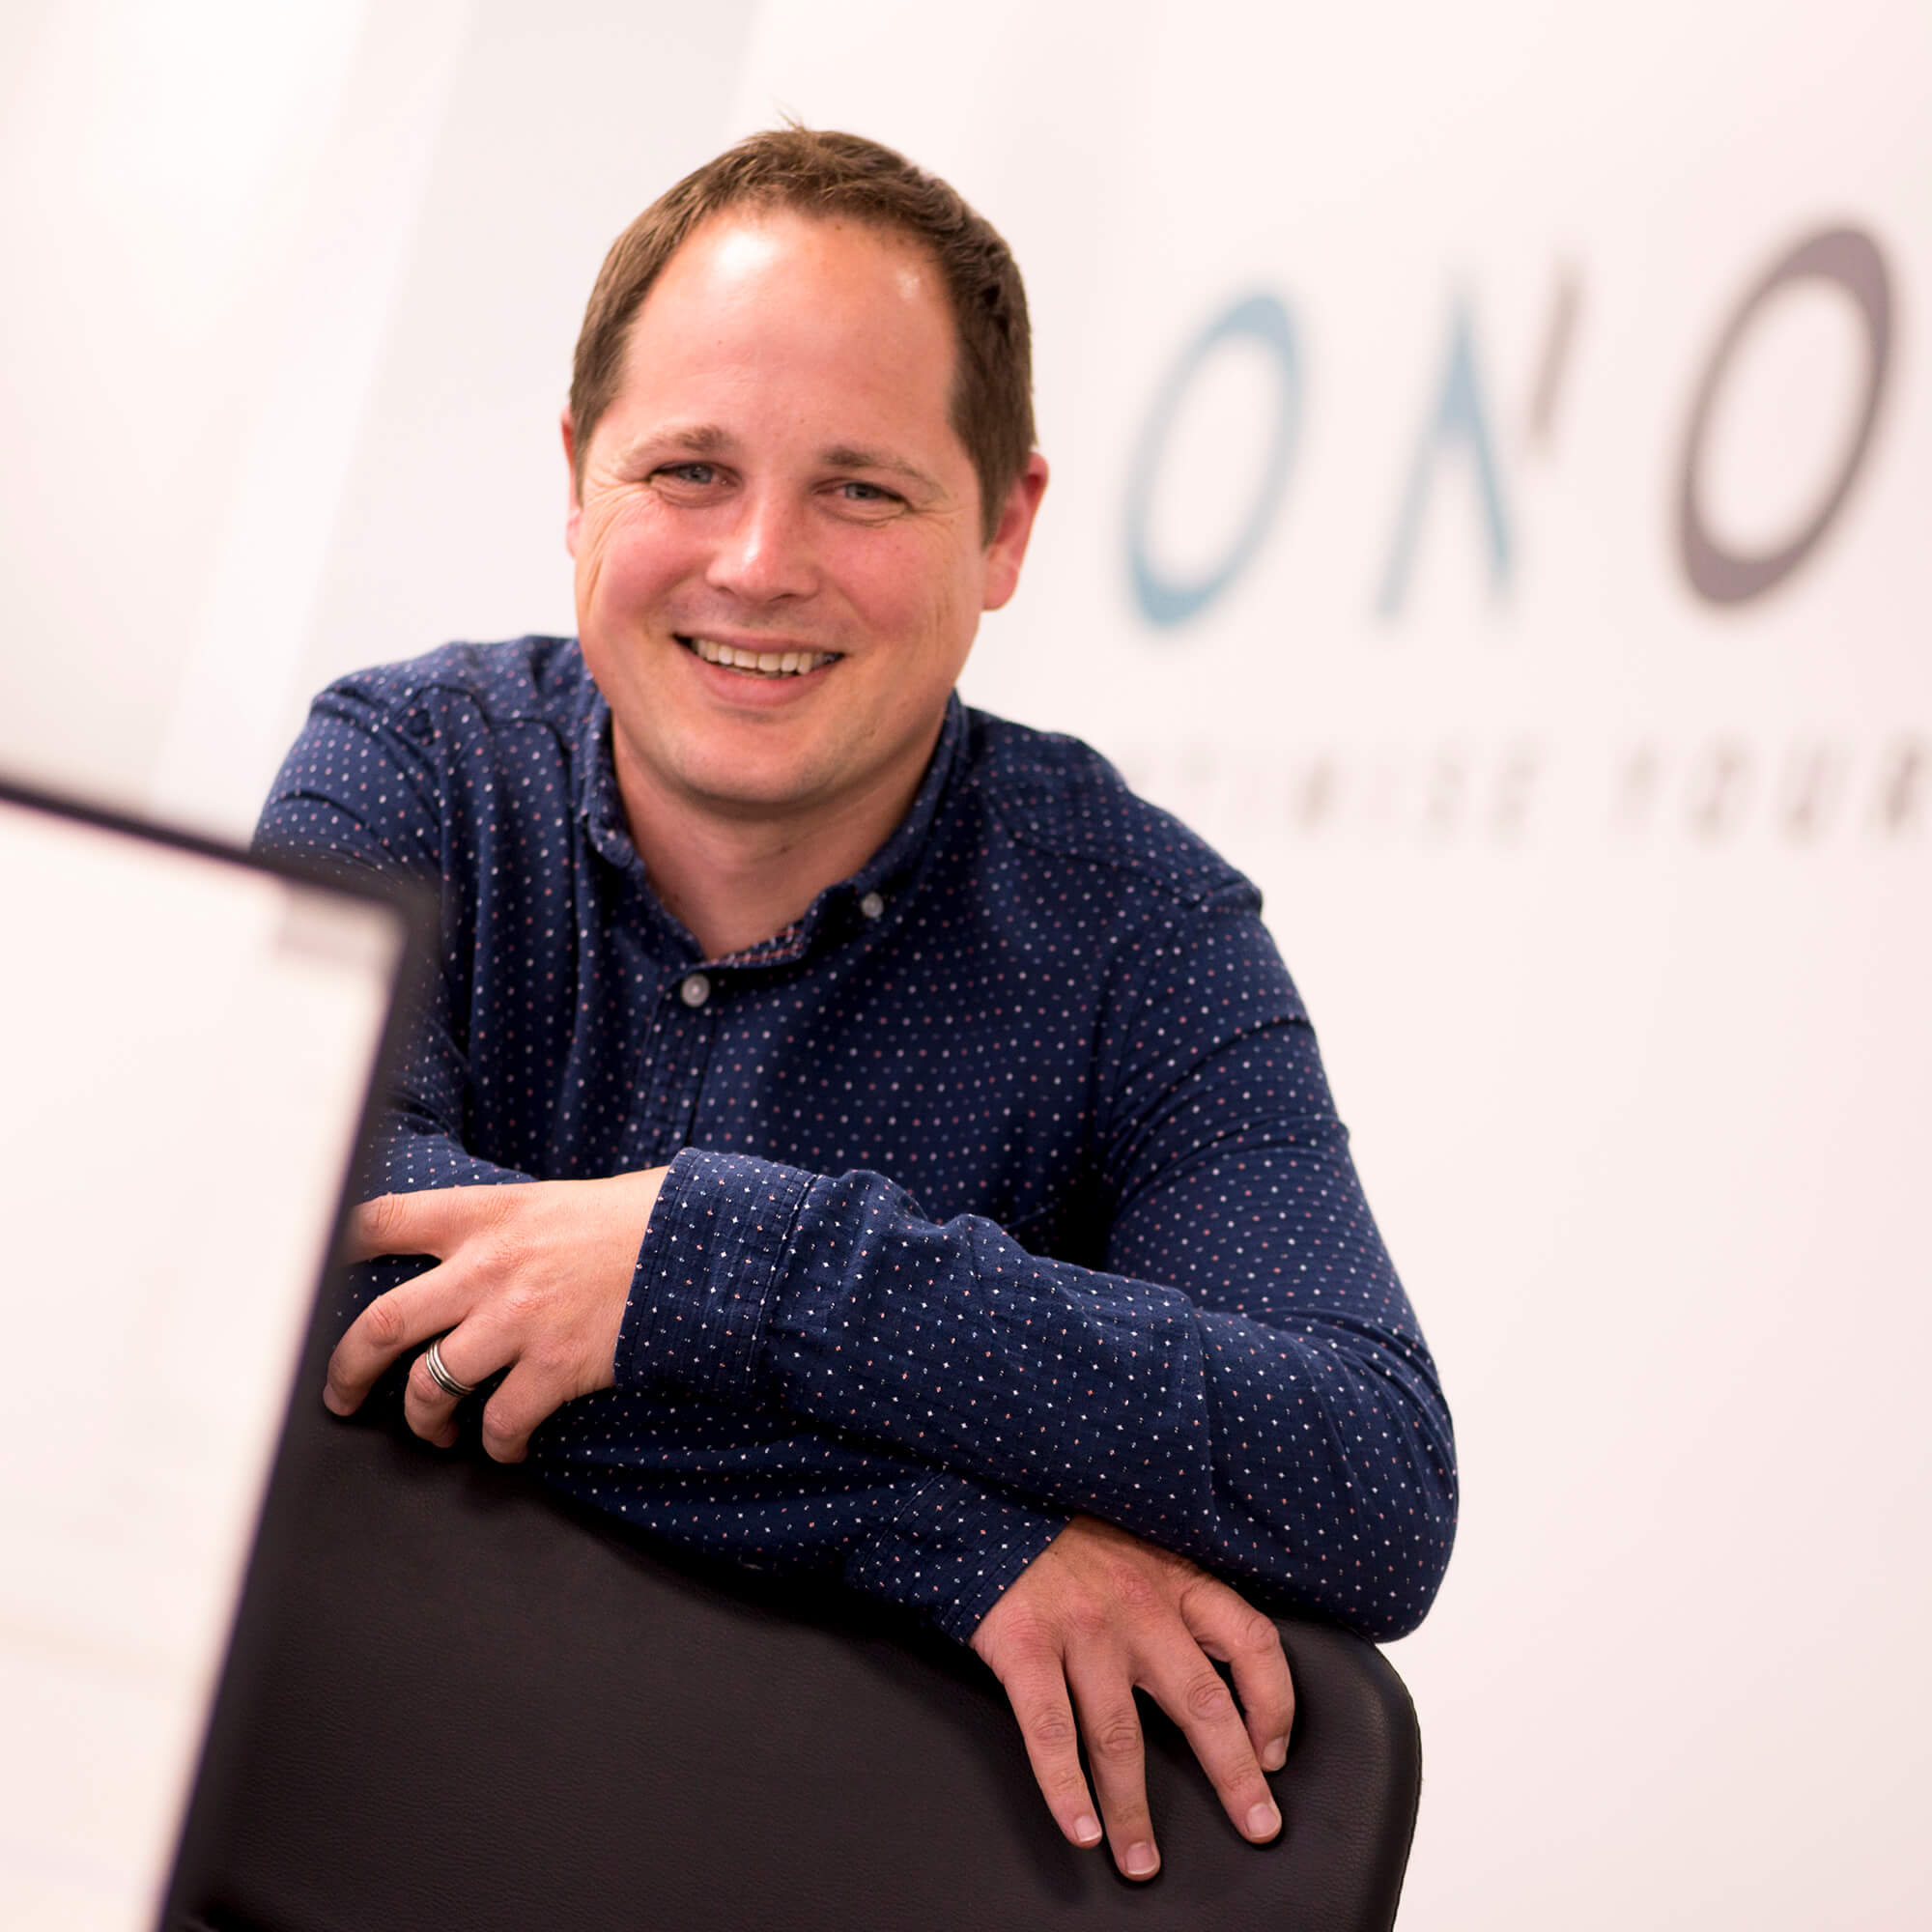 The Manager of Onomi smiles at the camera with his brand name in the background on the wall